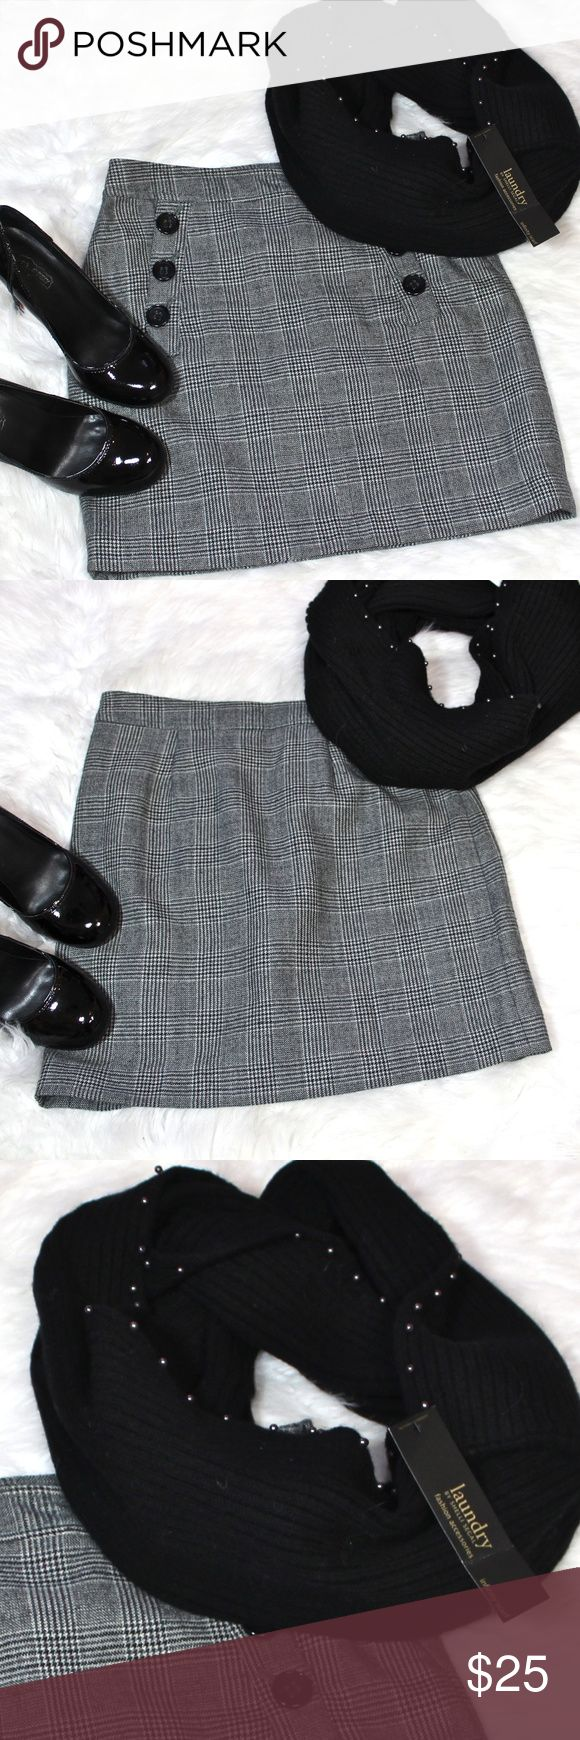 """NEAR NEW & REDUCED! BR Wool Plaid Button Skirt ☀️Banana Republic 100% Wool Plaid Skirt with button front. Grey, creme, black & green. Perfect for work or play! Near New condition Working pockets Hidden side zipper Hook & eye closure No snags or stains Fully Lined 16"""" long 36"""" hem opening  ★BUNDLE with Beaded Infinity Scarf & shiny Oh Deer! heels shown—OR ANY of the MANY accessories  IN MY CLOSET★   ☀️Items $10 & under are firm unless bundled.☀   ★NO Low Ball offers please!★ Raising money for…"""